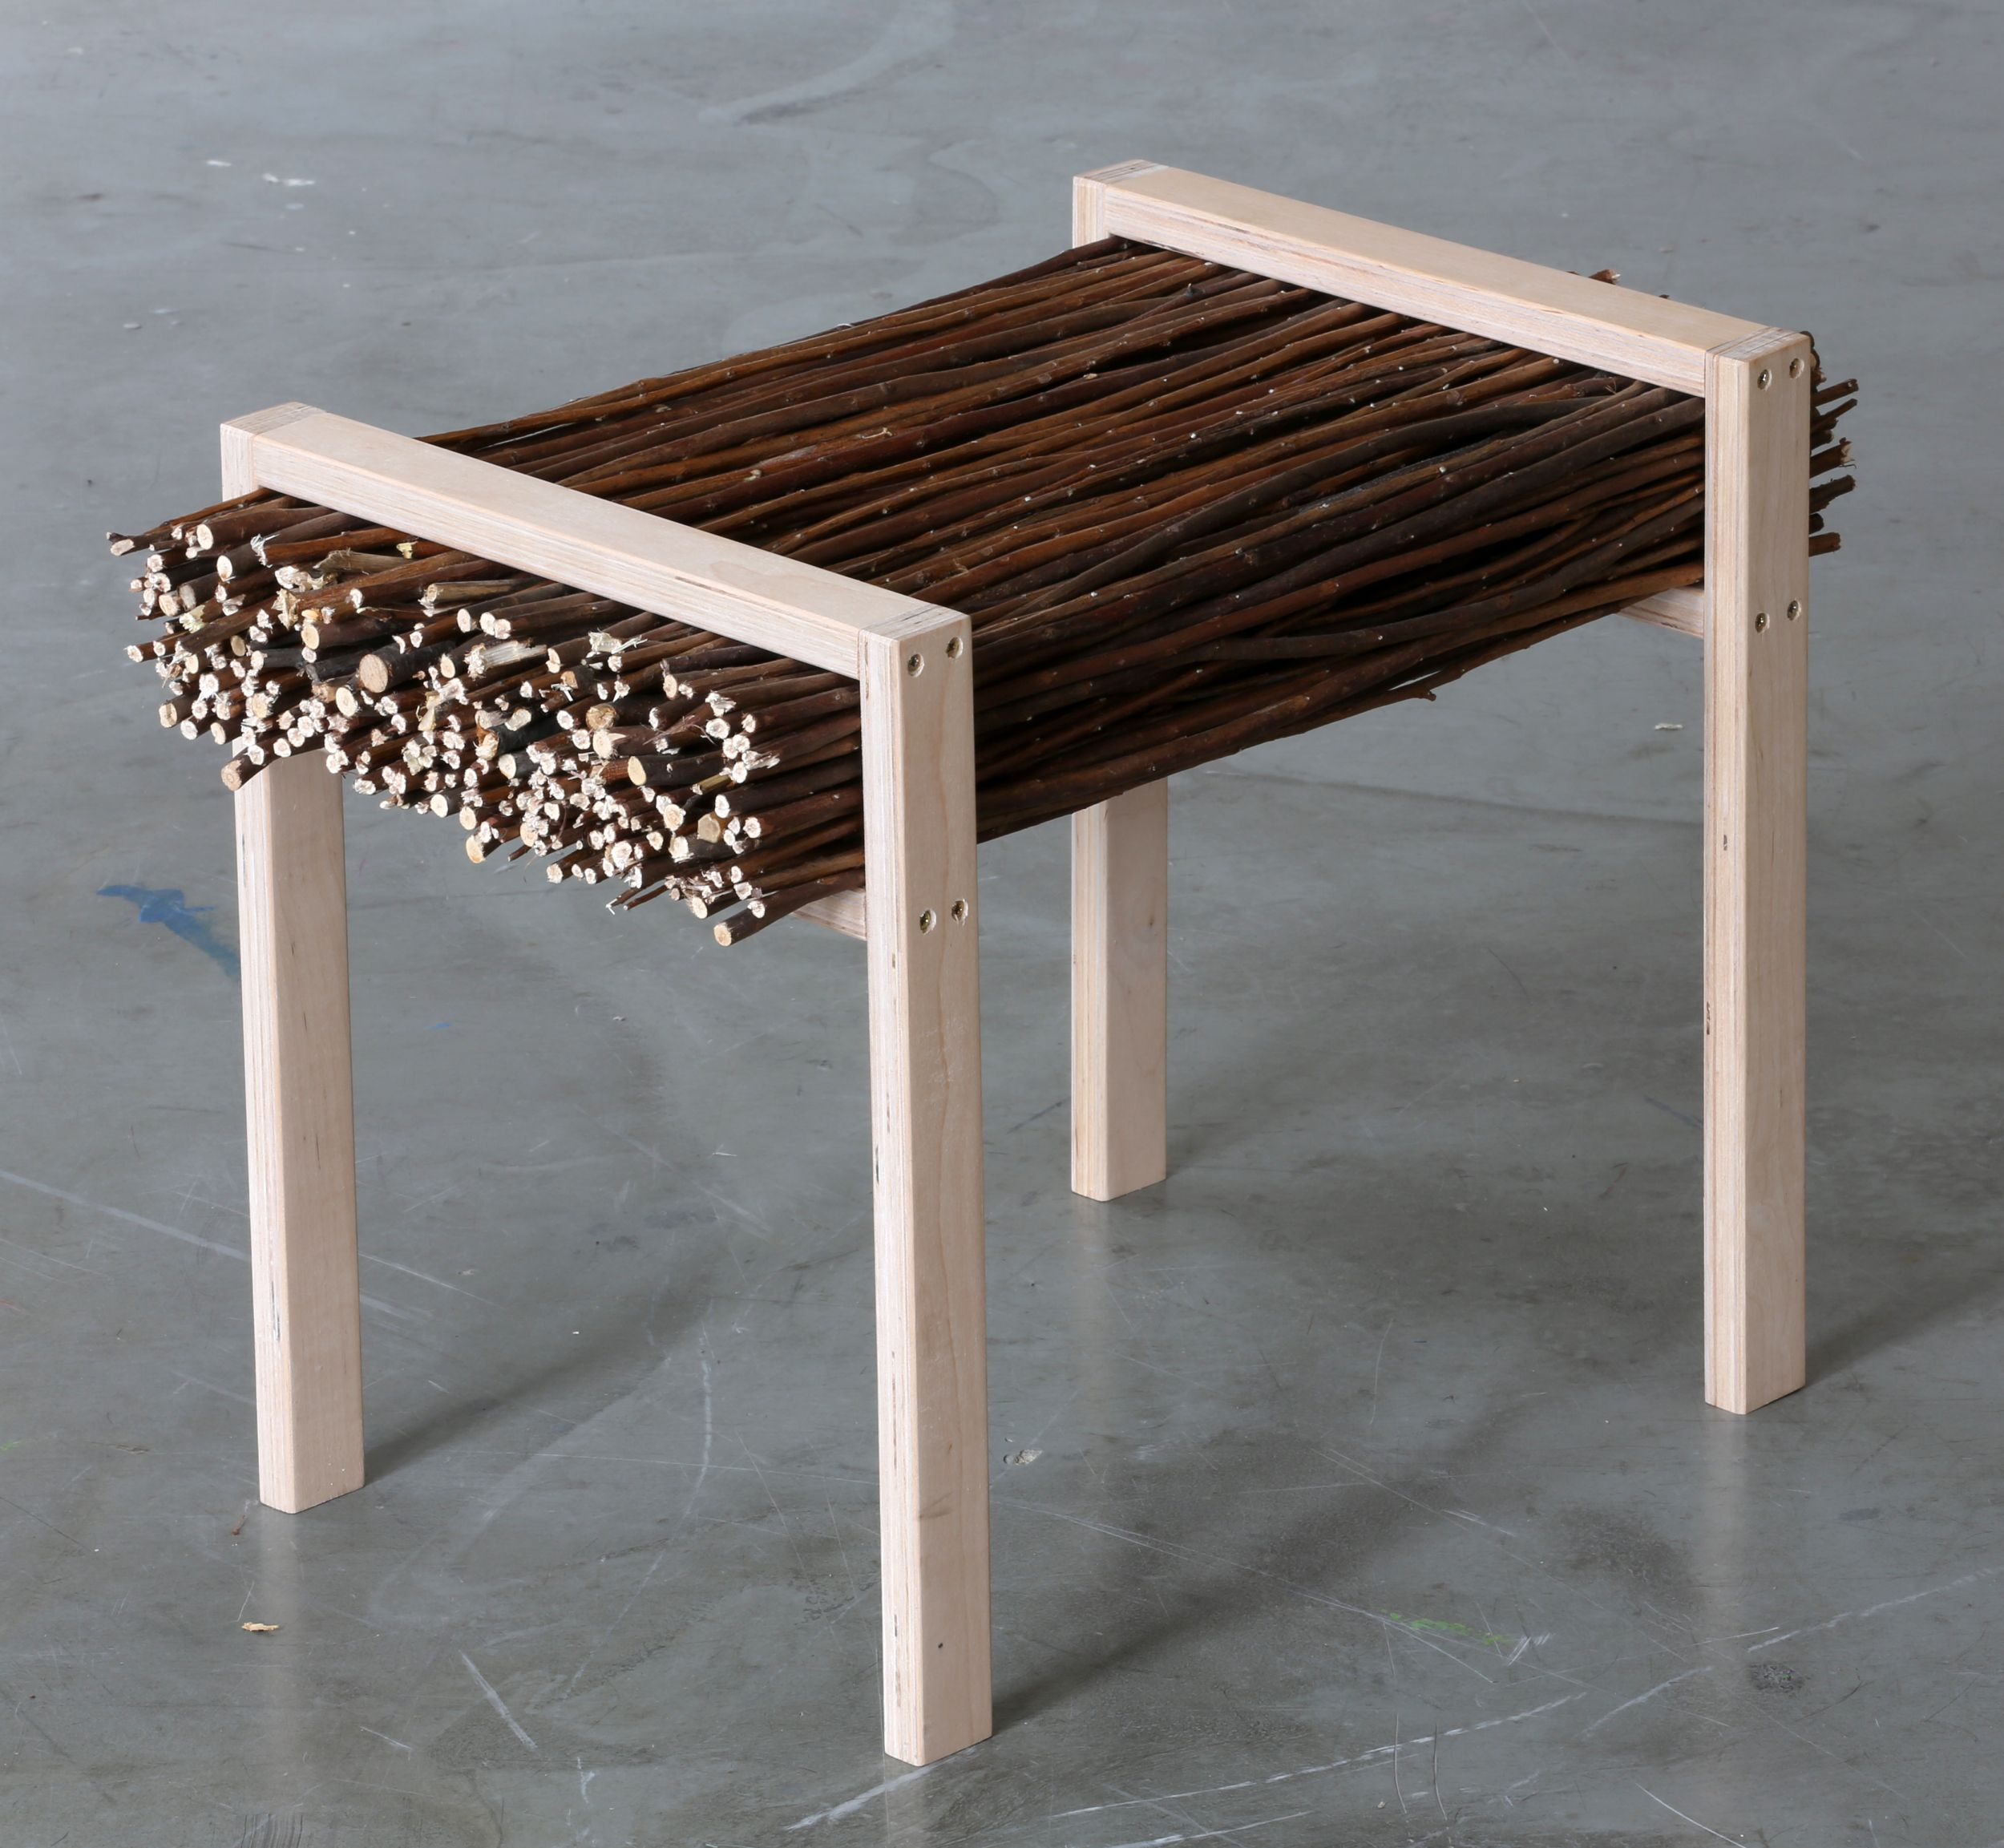 collection garden furniture accessories pictures. Bench Twig ,STUDIO VACEK, Series 3xR - A Collection Of Furniture And Accessories From Garden Pictures